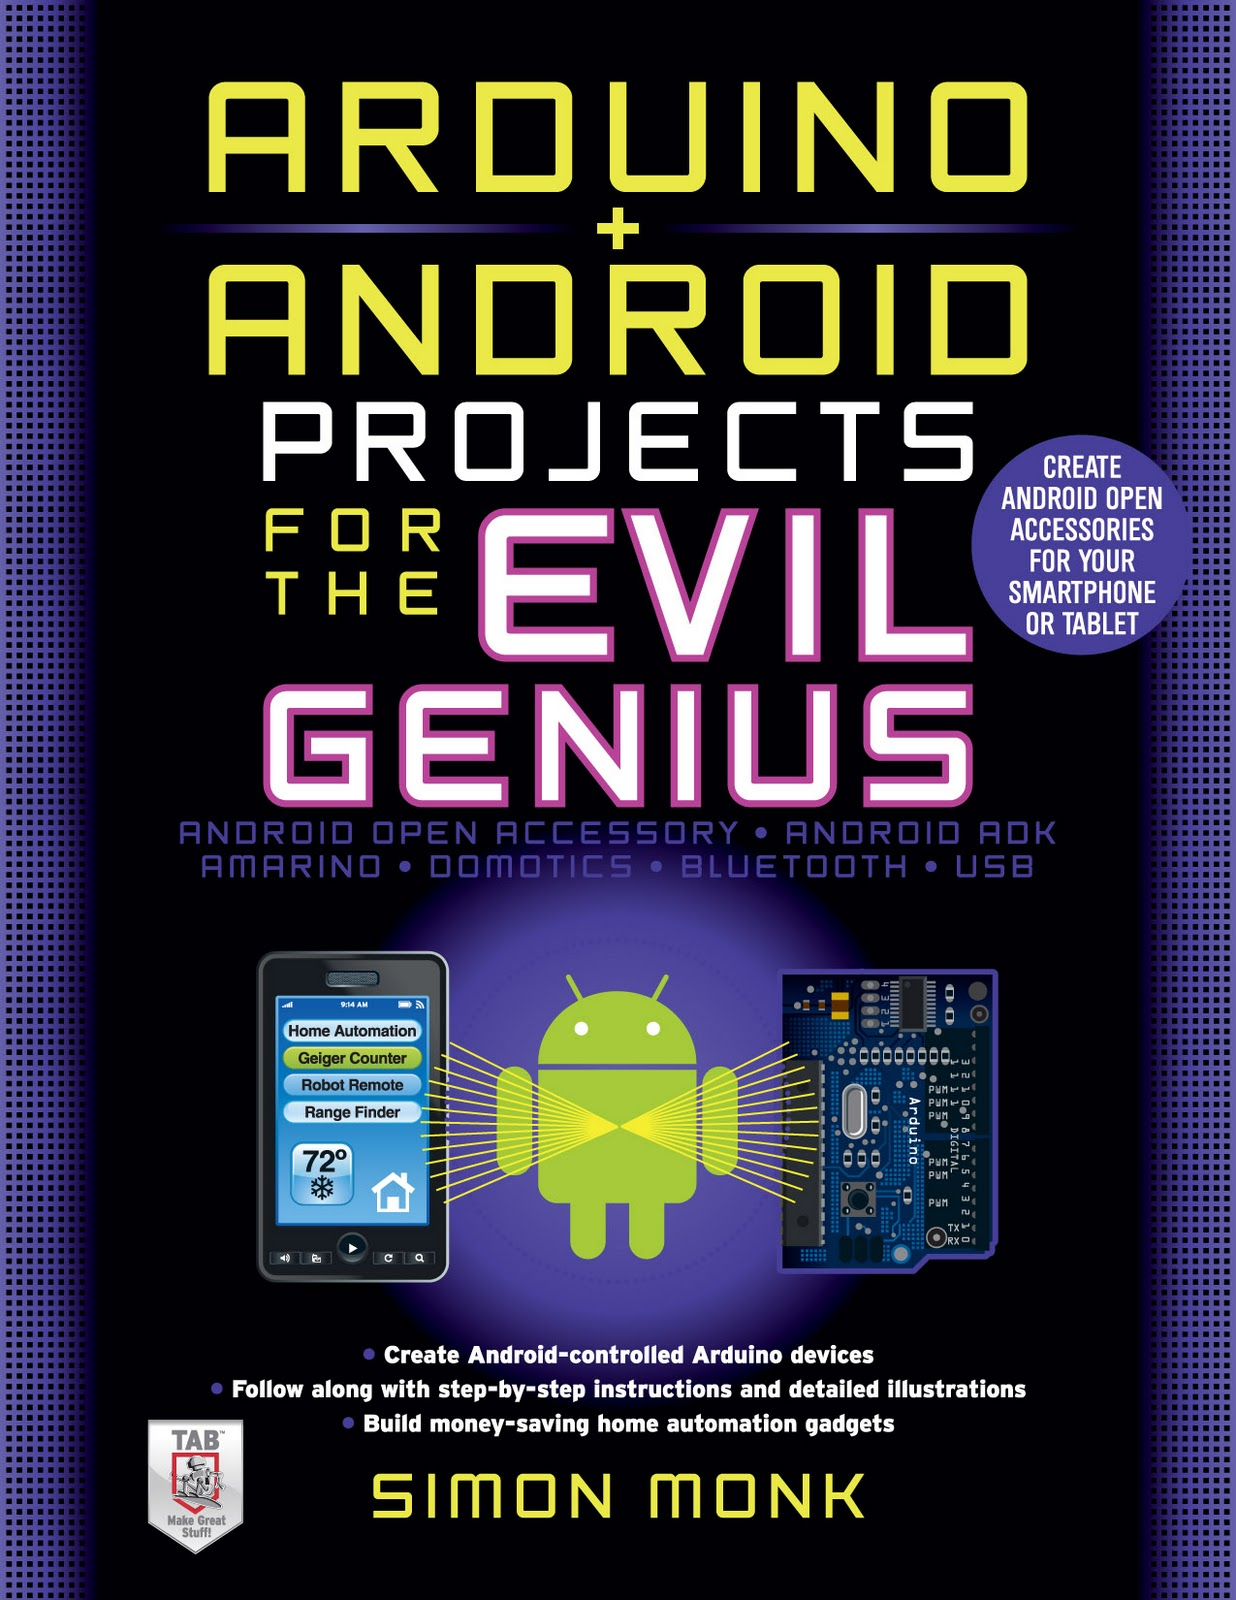 dr monk s diy electronics blog arduino android projects for the